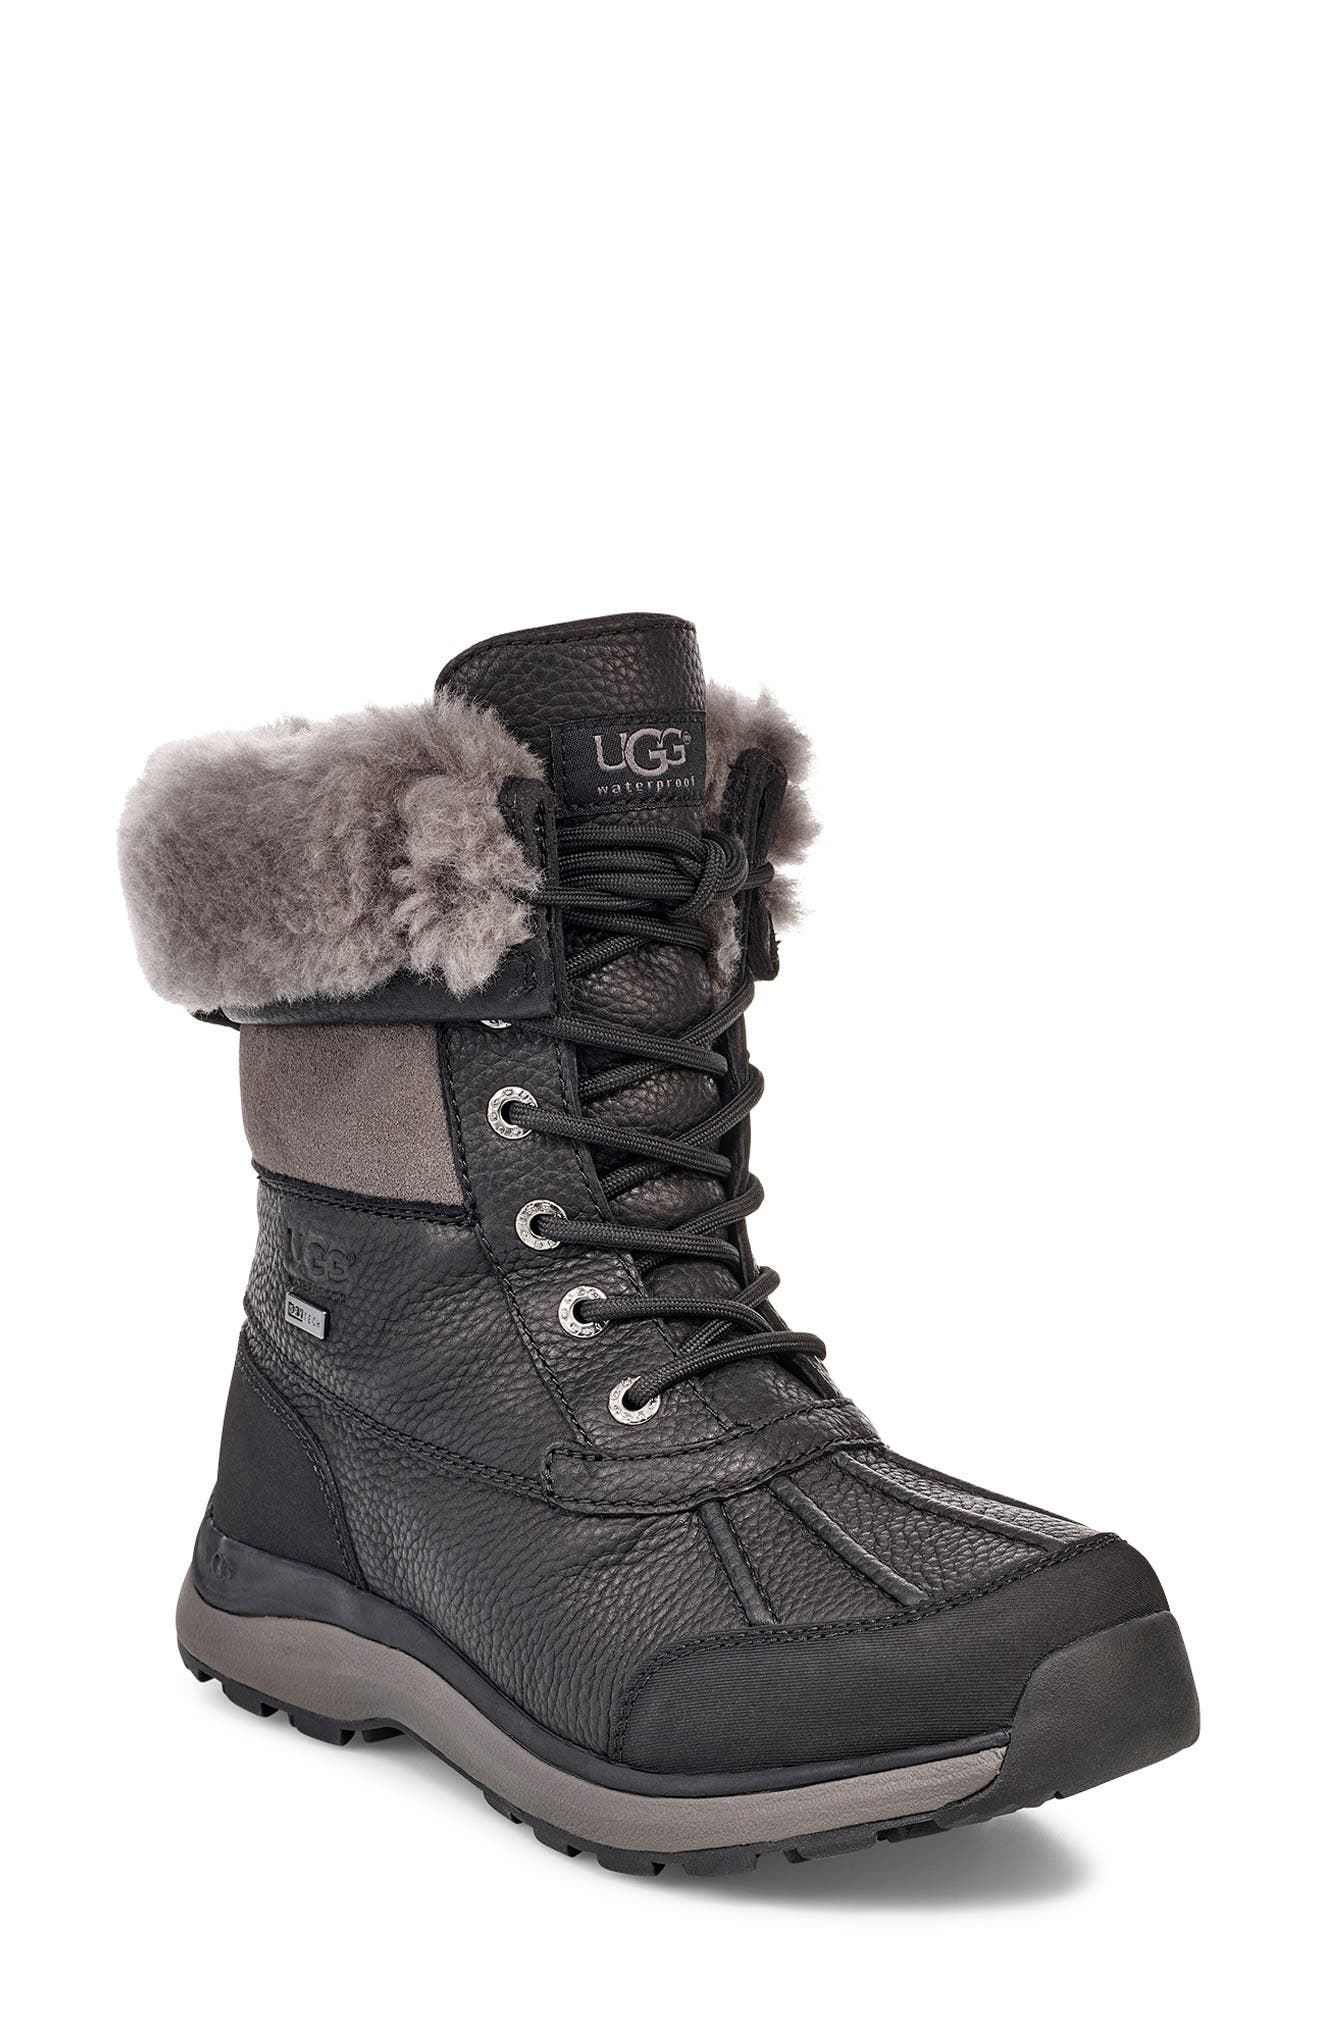 Adirondack Iii Waterproof Bootie by Ugg®